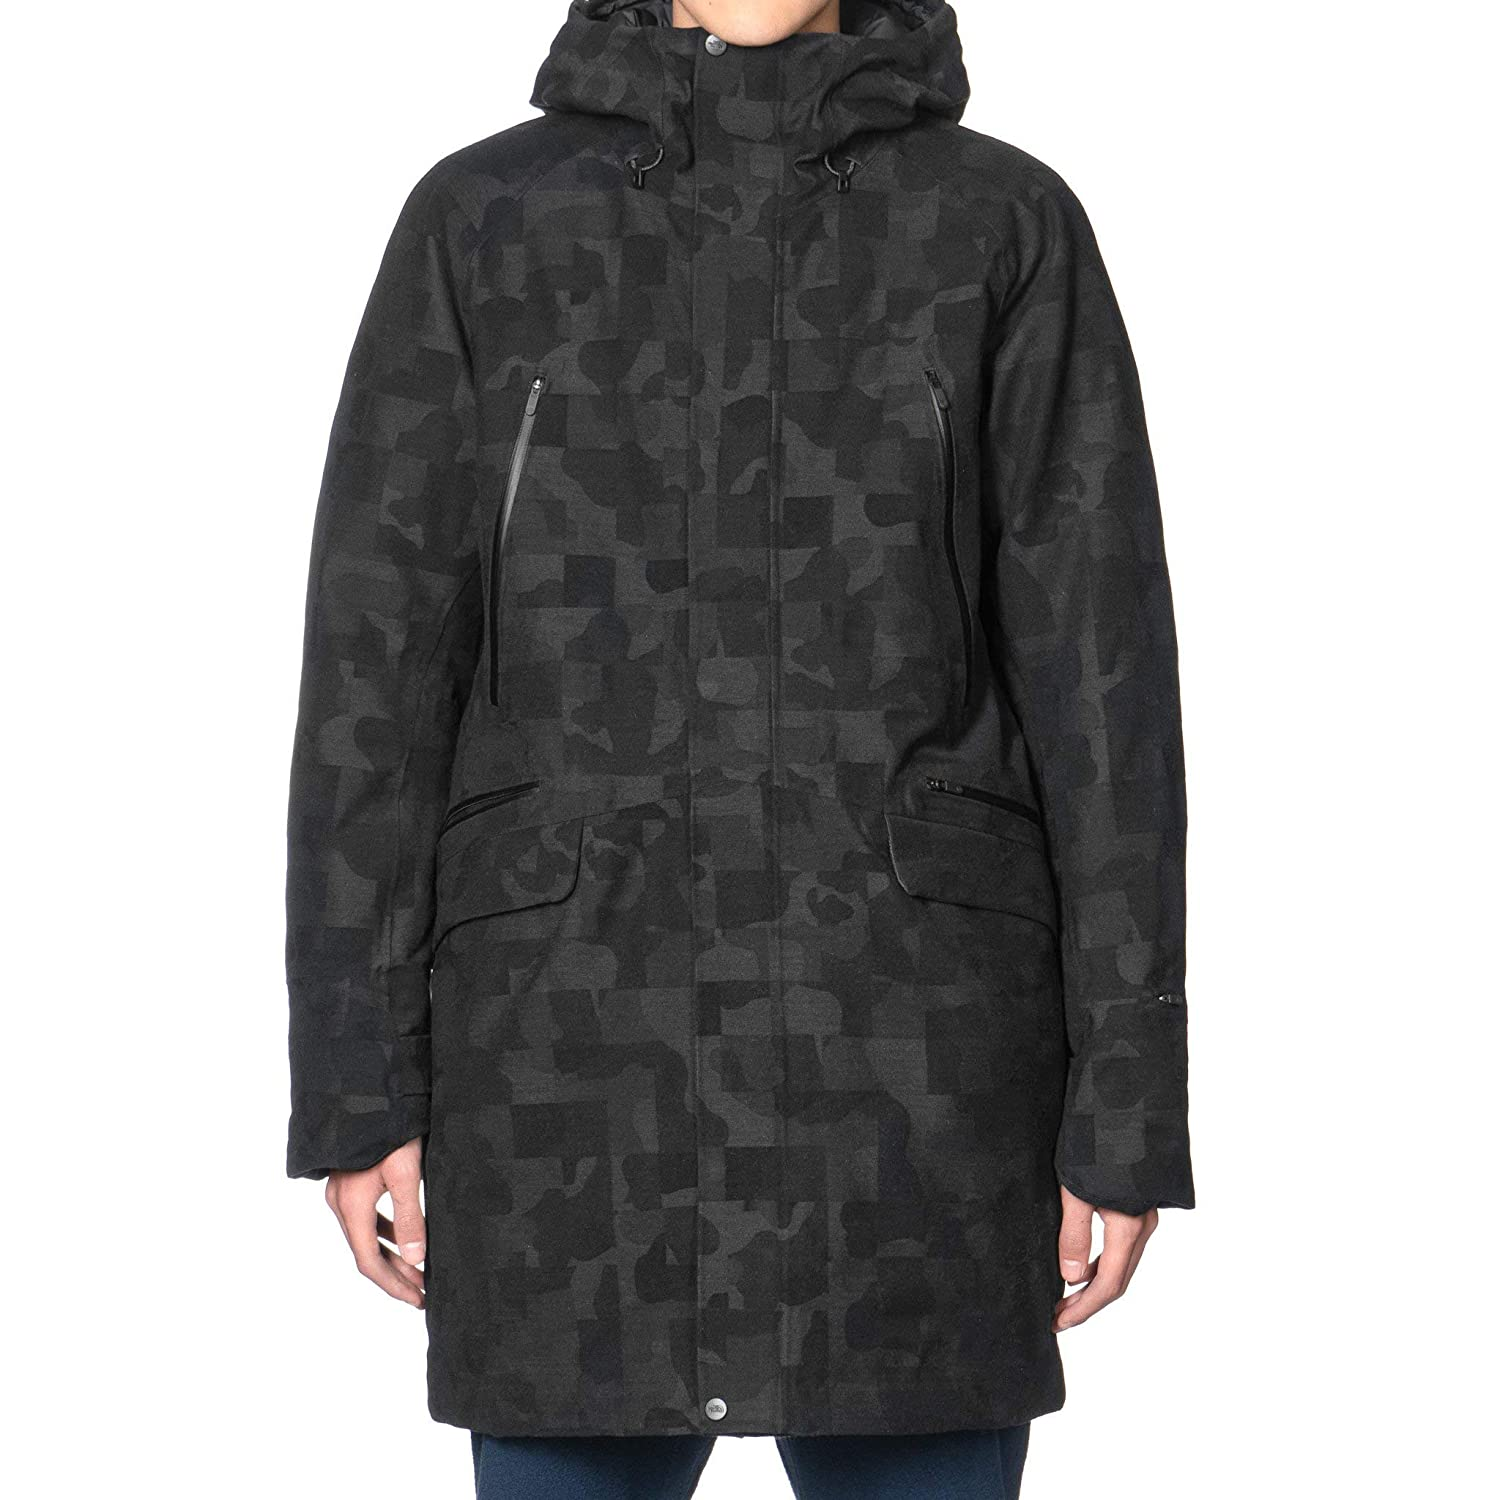 贅沢品 (ザノースフェイス) THE NORTH FACE Black series Jacquard Wool L Wool Blend Down Parka GTX 男性パディングジャケット (並行輸入品) B07NJK2RS8 L|Black Jacquard Black Jacquard L, 鯖江市:40b00a96 --- arianechie.dominiotemporario.com